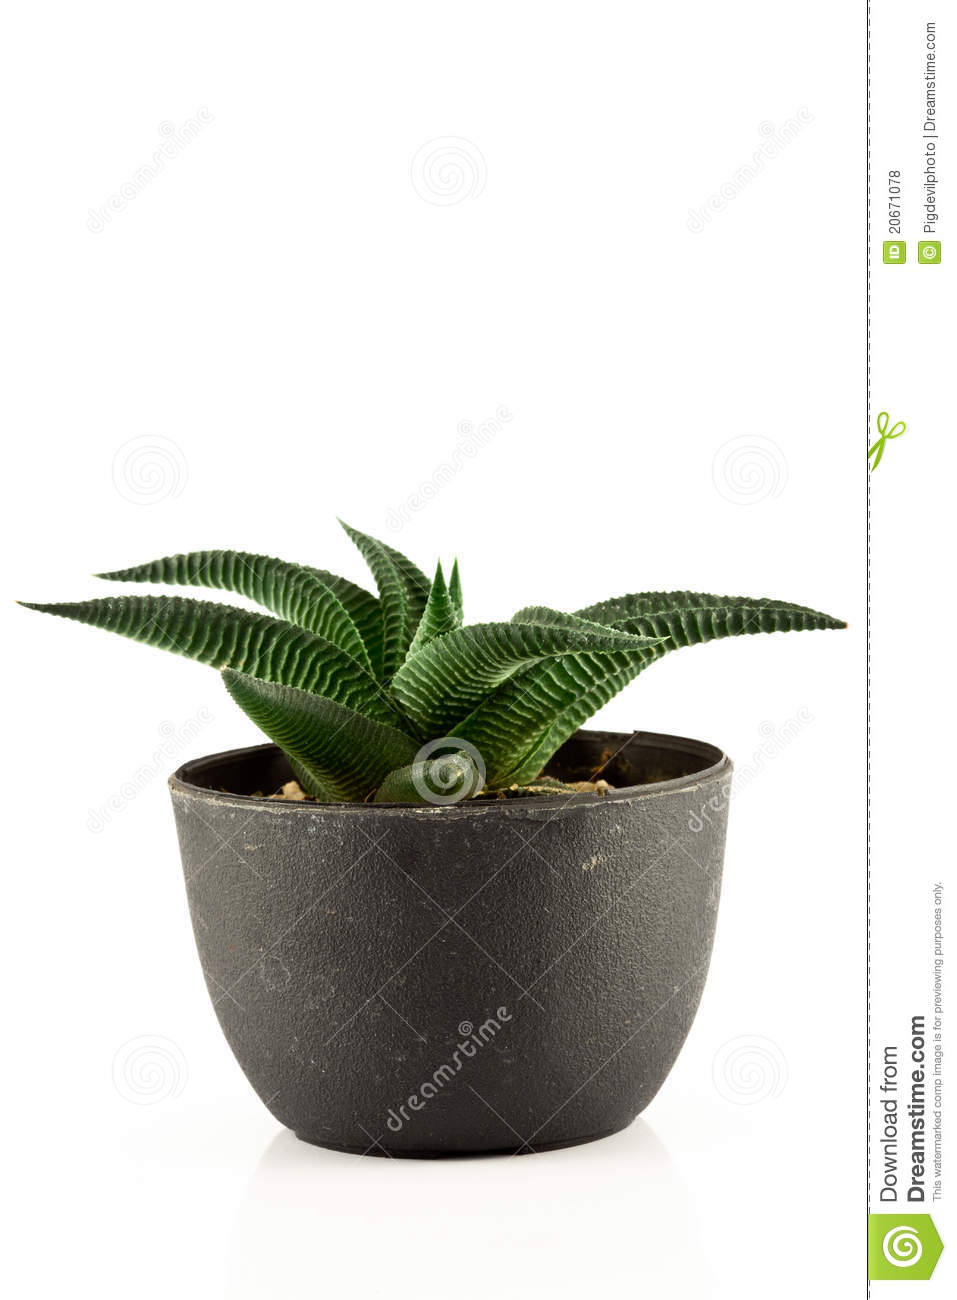 Aloe vera in a pot royalty free stock photos image 20671078 - Aloe vera en pot ...